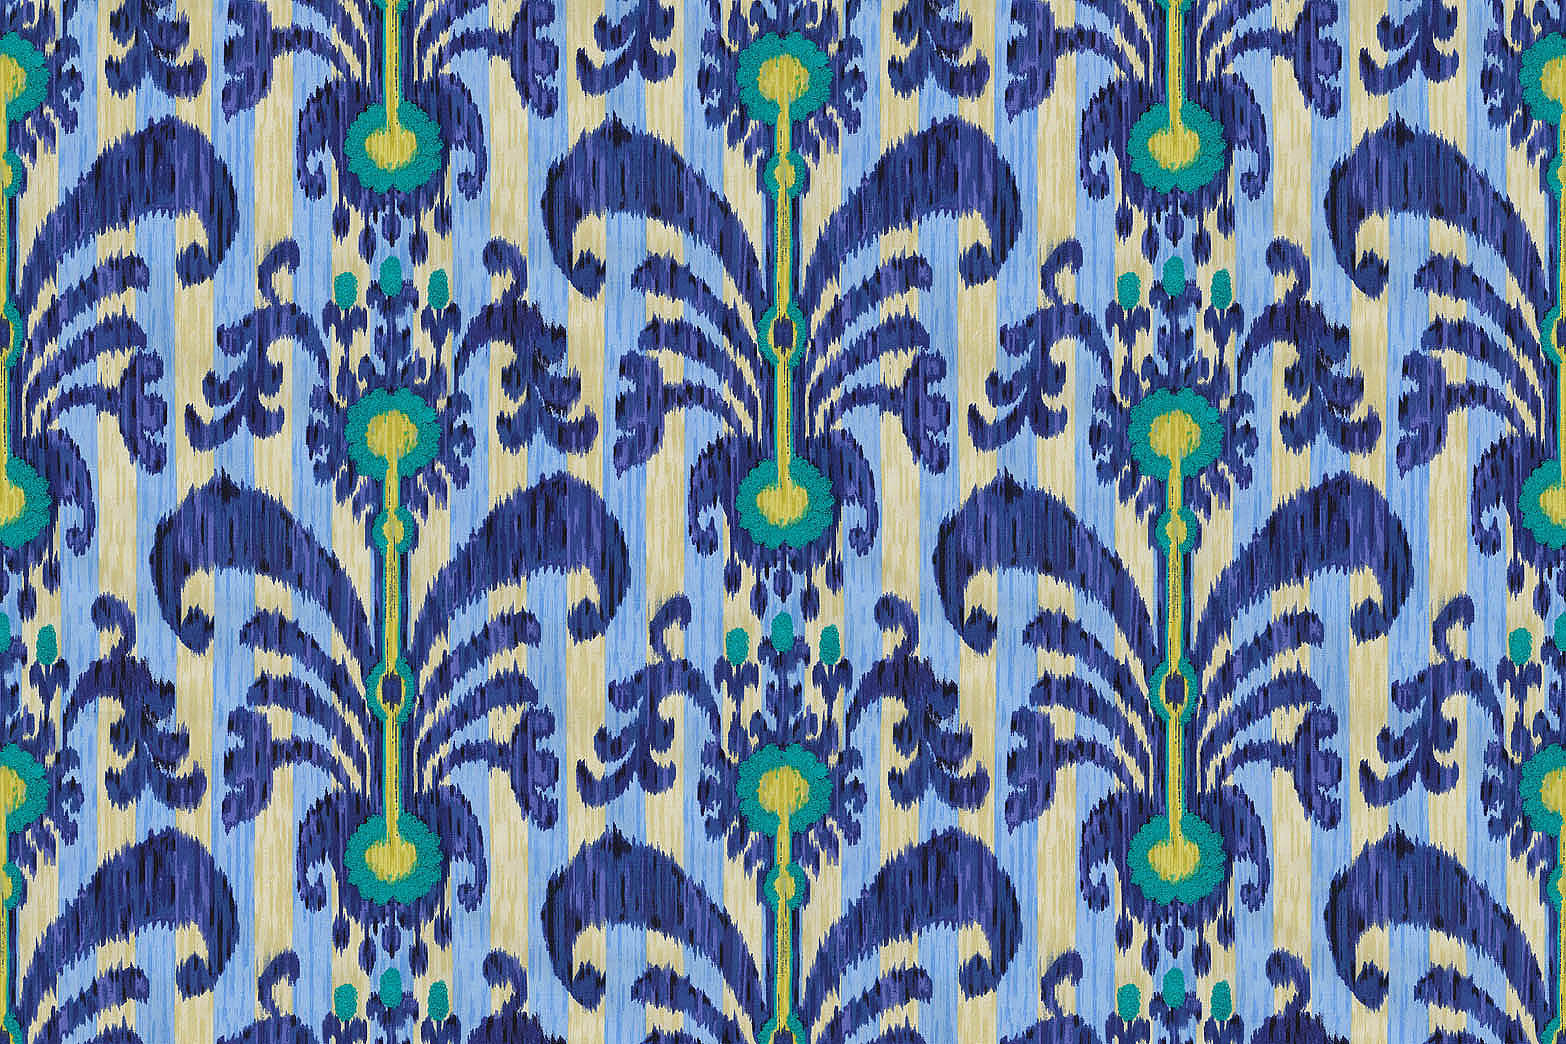 Home Decor 8\u0022x8\u0022 Fabric Swatch-IMAN Home Java Moon Luna